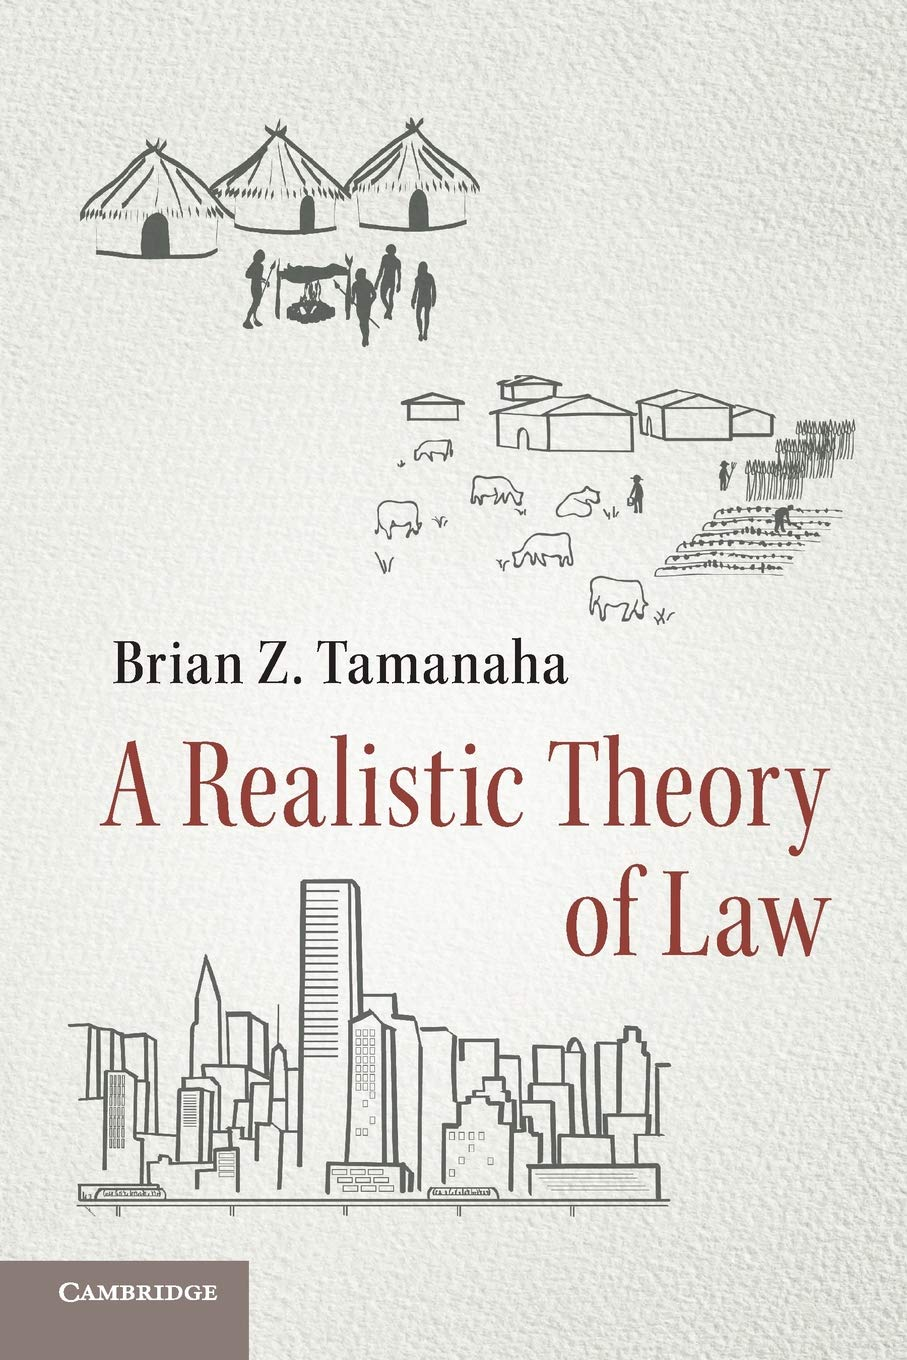 a realistic theory of law brian z tamanaha 9781316638514 amazon